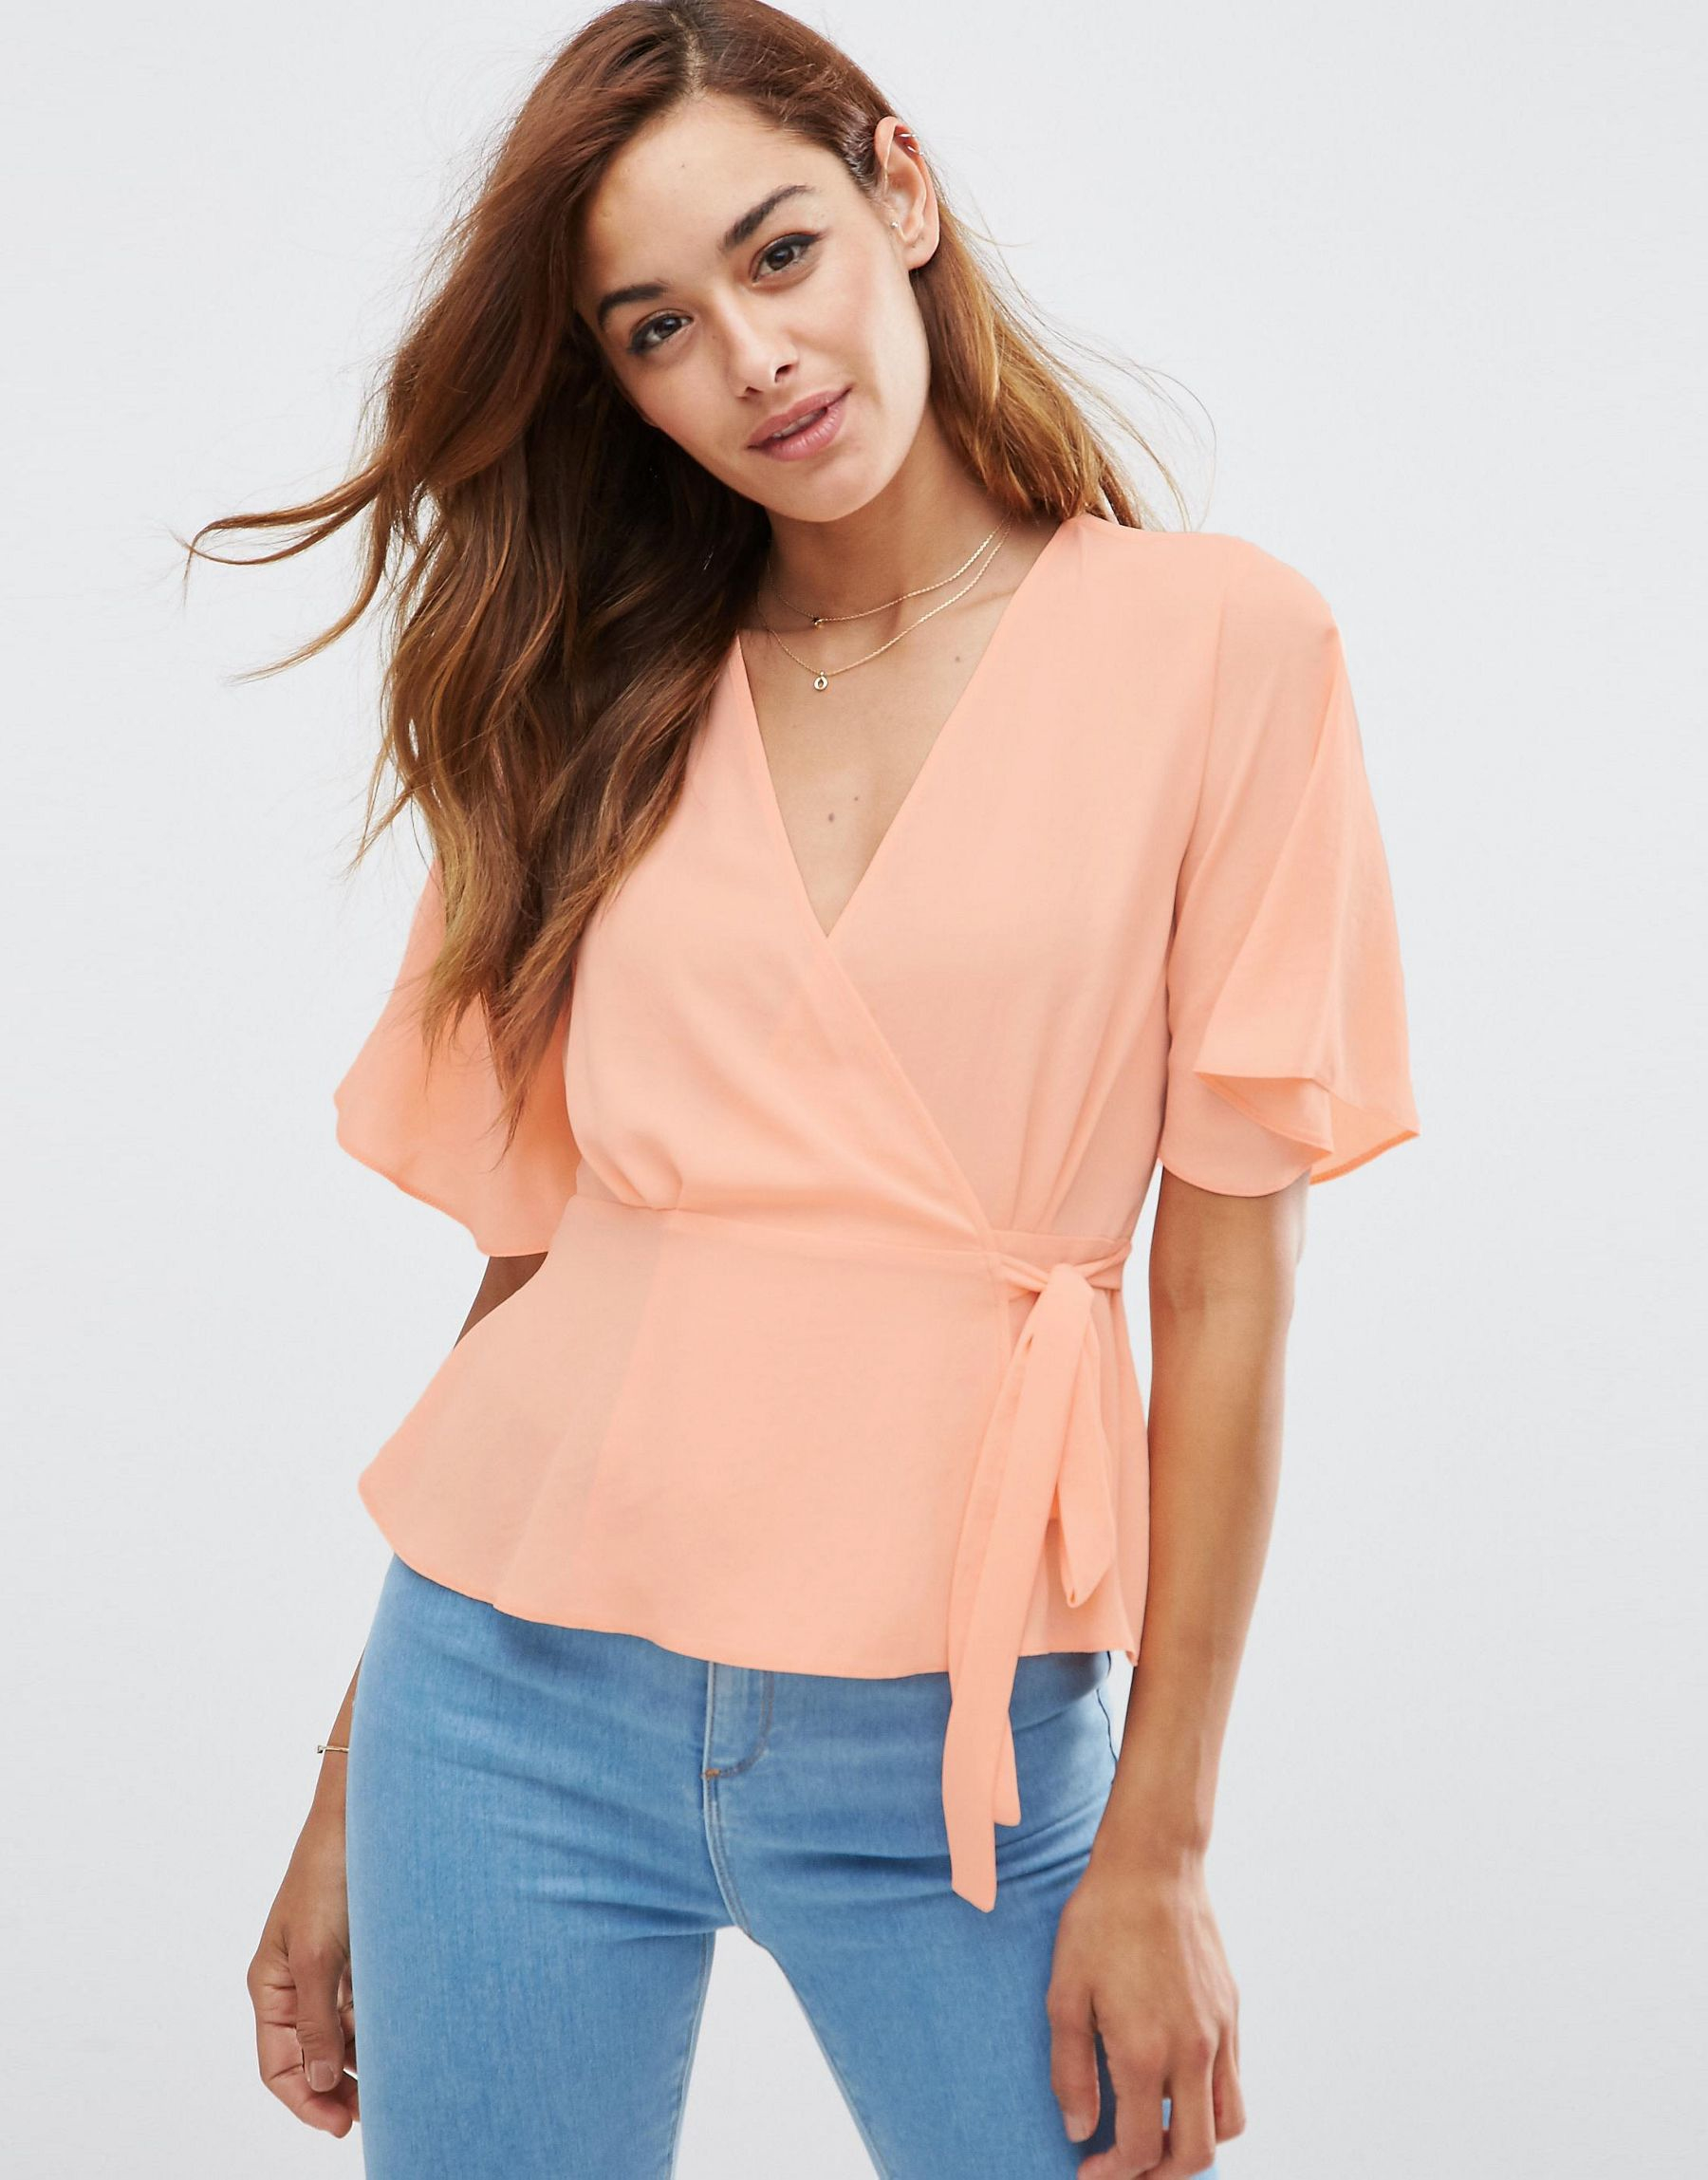 asos online fashion retailer brand audit Asos swot analysis, usp & competitors posted in lifestyle and asos parent company asos category clothing & retail sector retail tagline/ slogan discover fashion online usp sells over 850 brands as well as its own range of clothing and accessories 2 innovative ways to display.